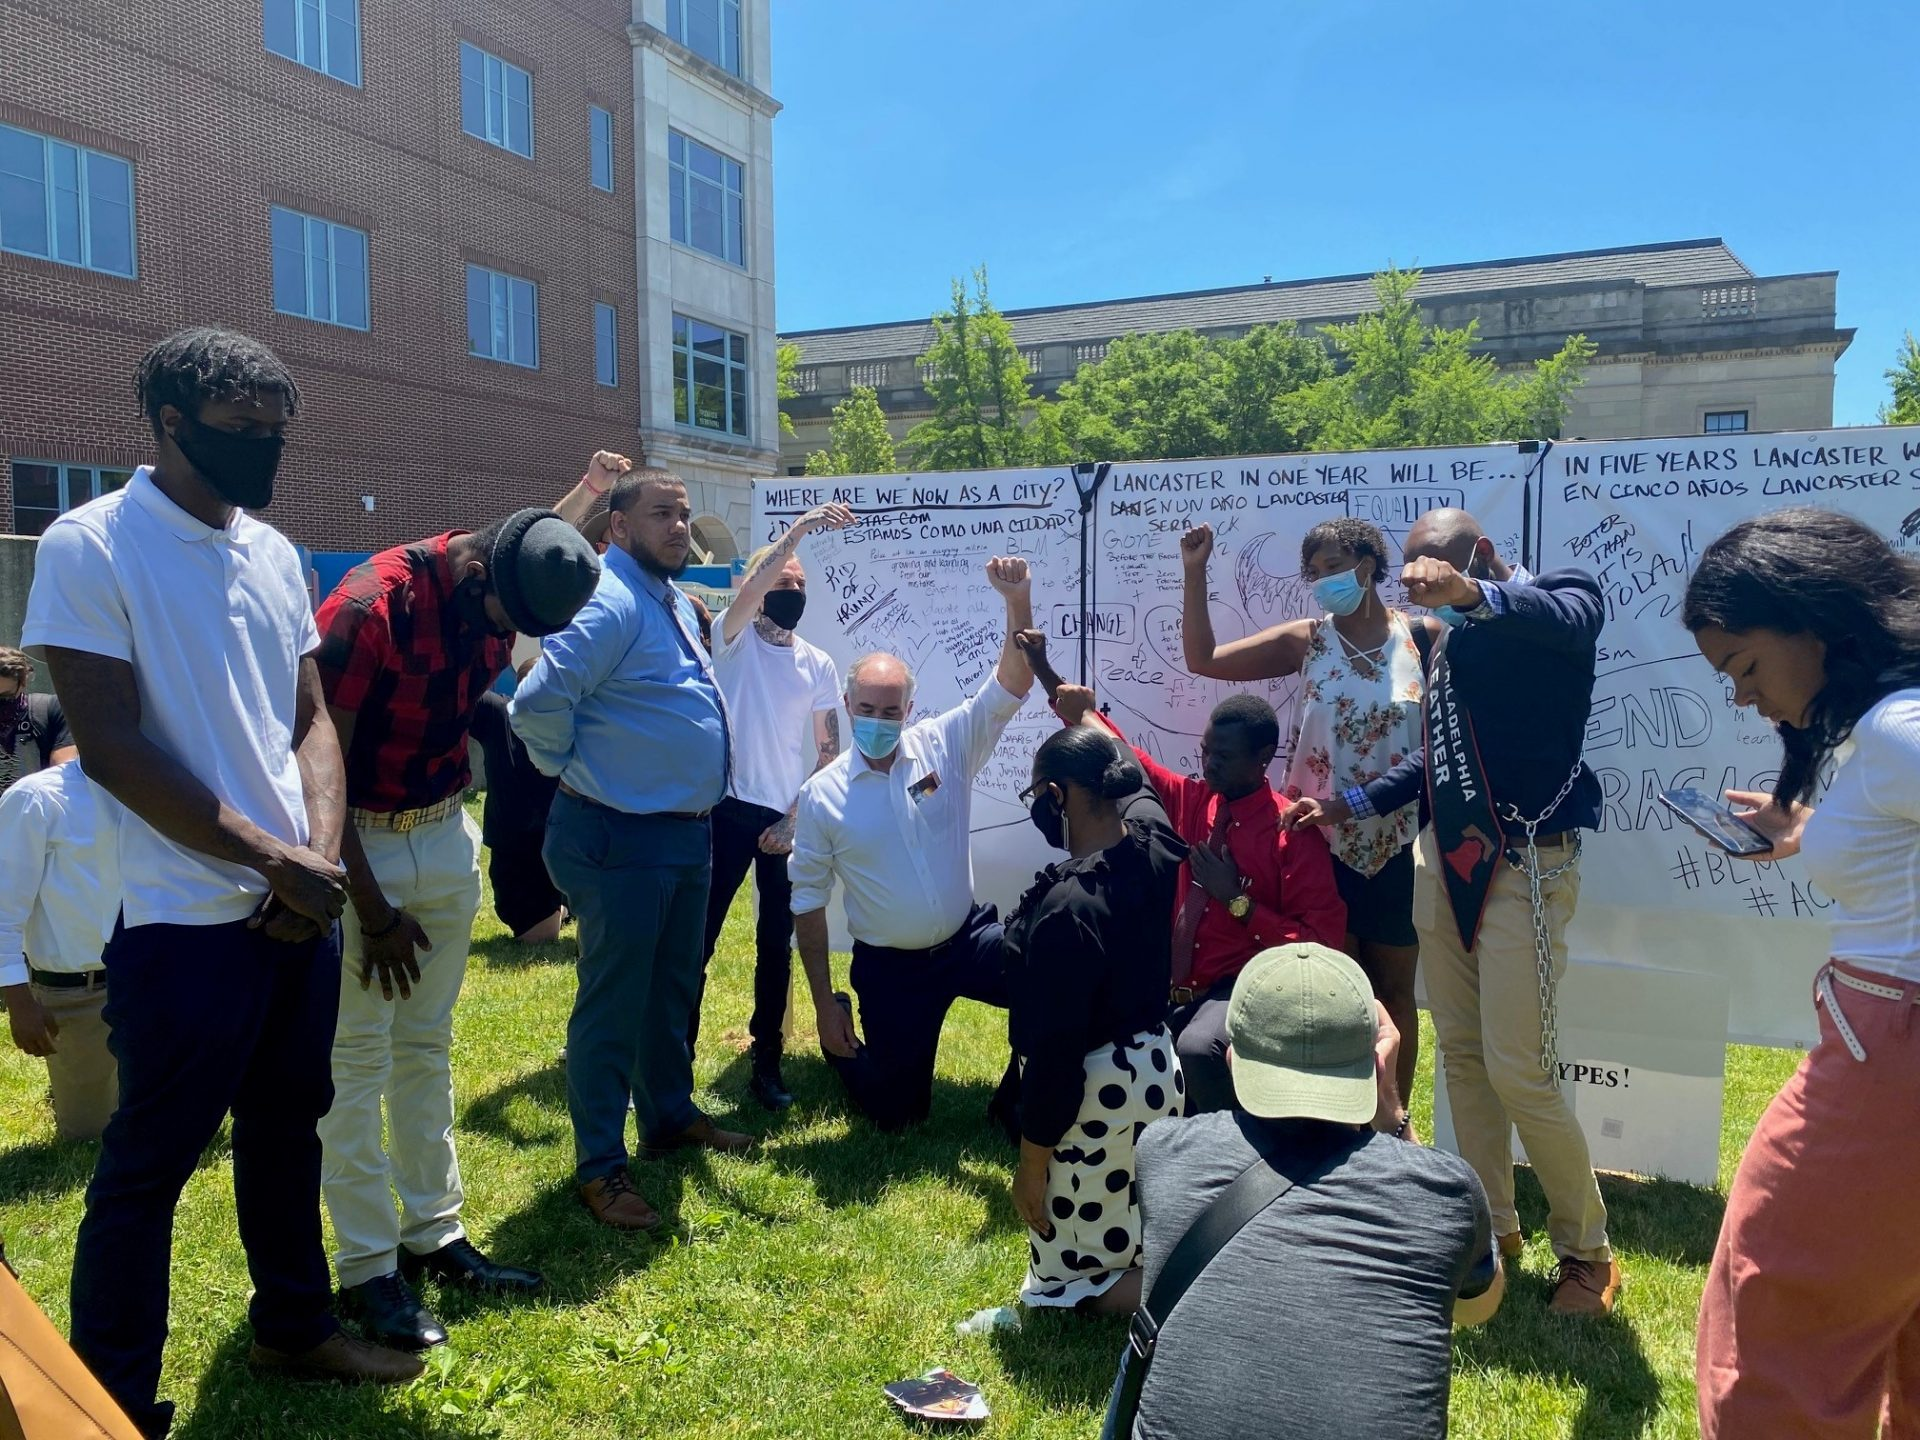 Sen. Bob Casey, D-Pa., kneels with protesters in Lancaster on Monday, June 8, 2020. (Source: Office of Sen. Casey)